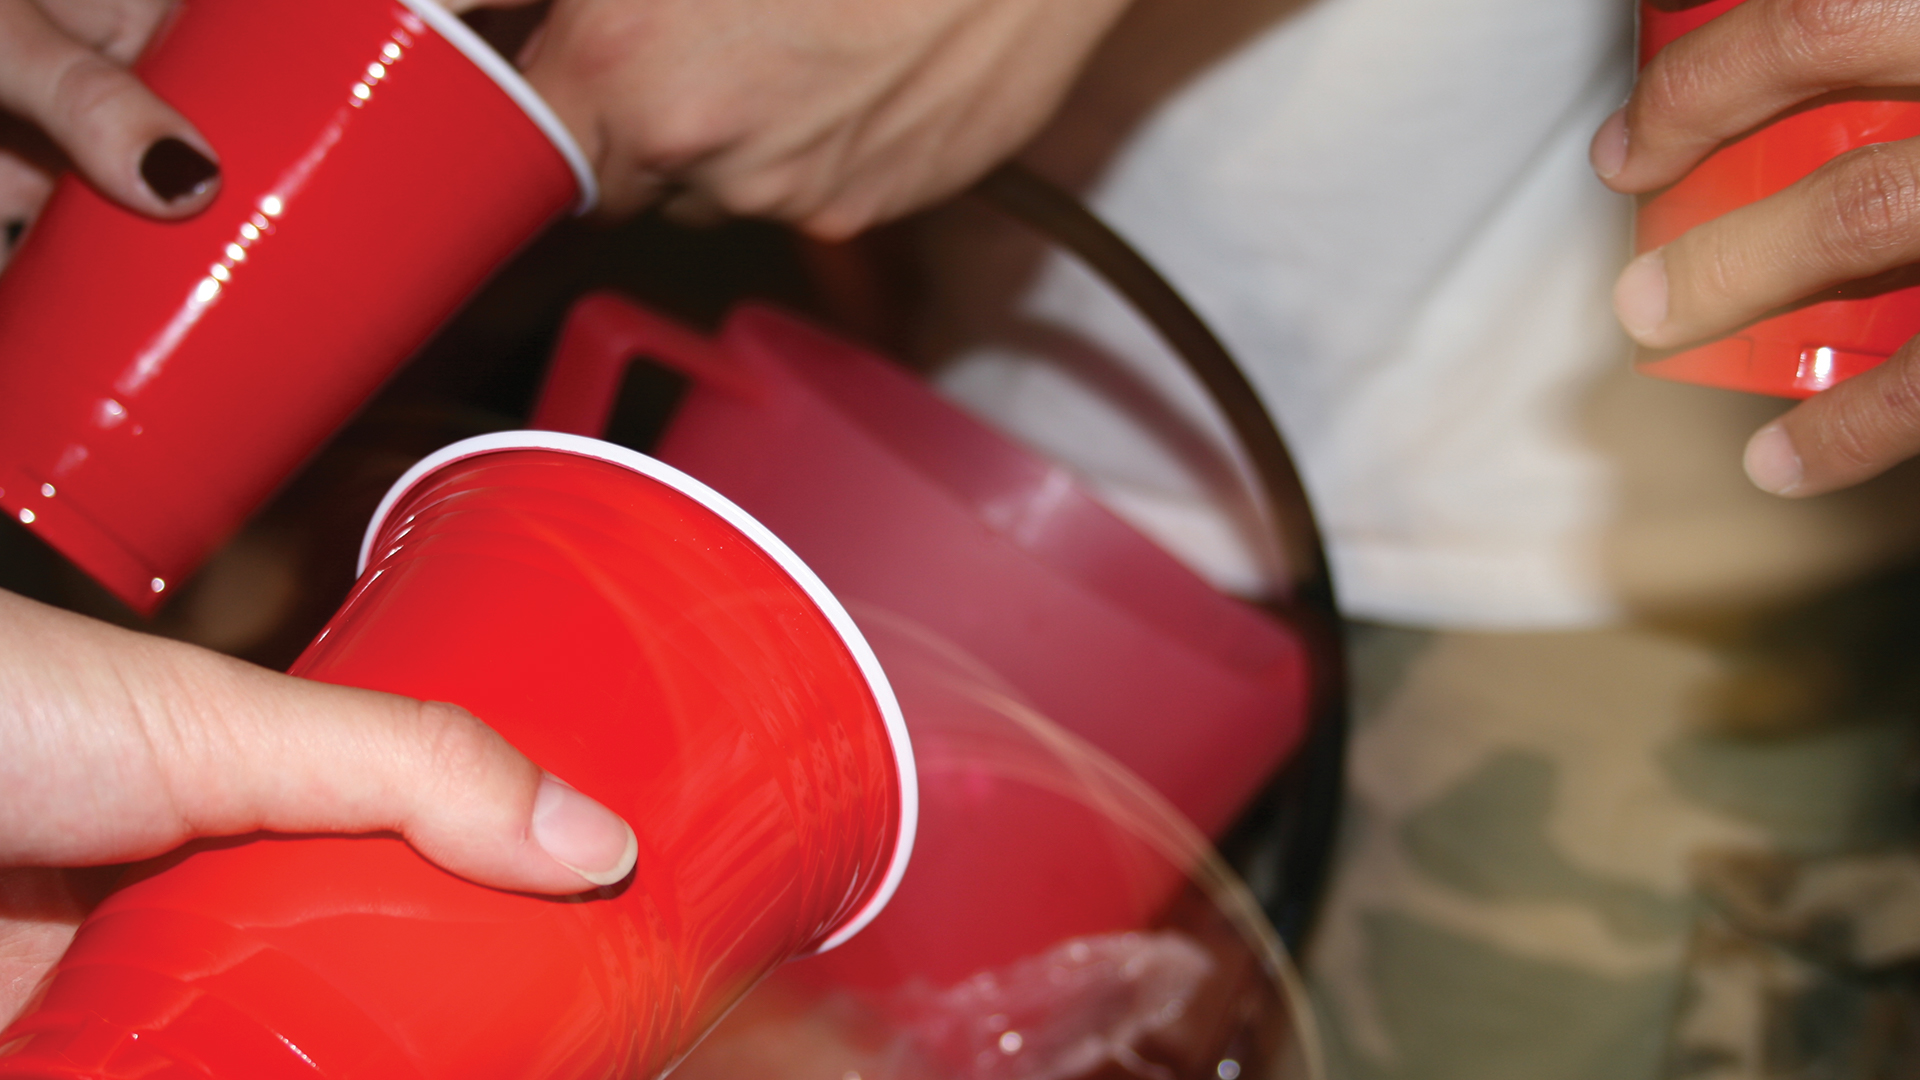 Nova Scotia RCMP officers lie in wait to ticket partygoers